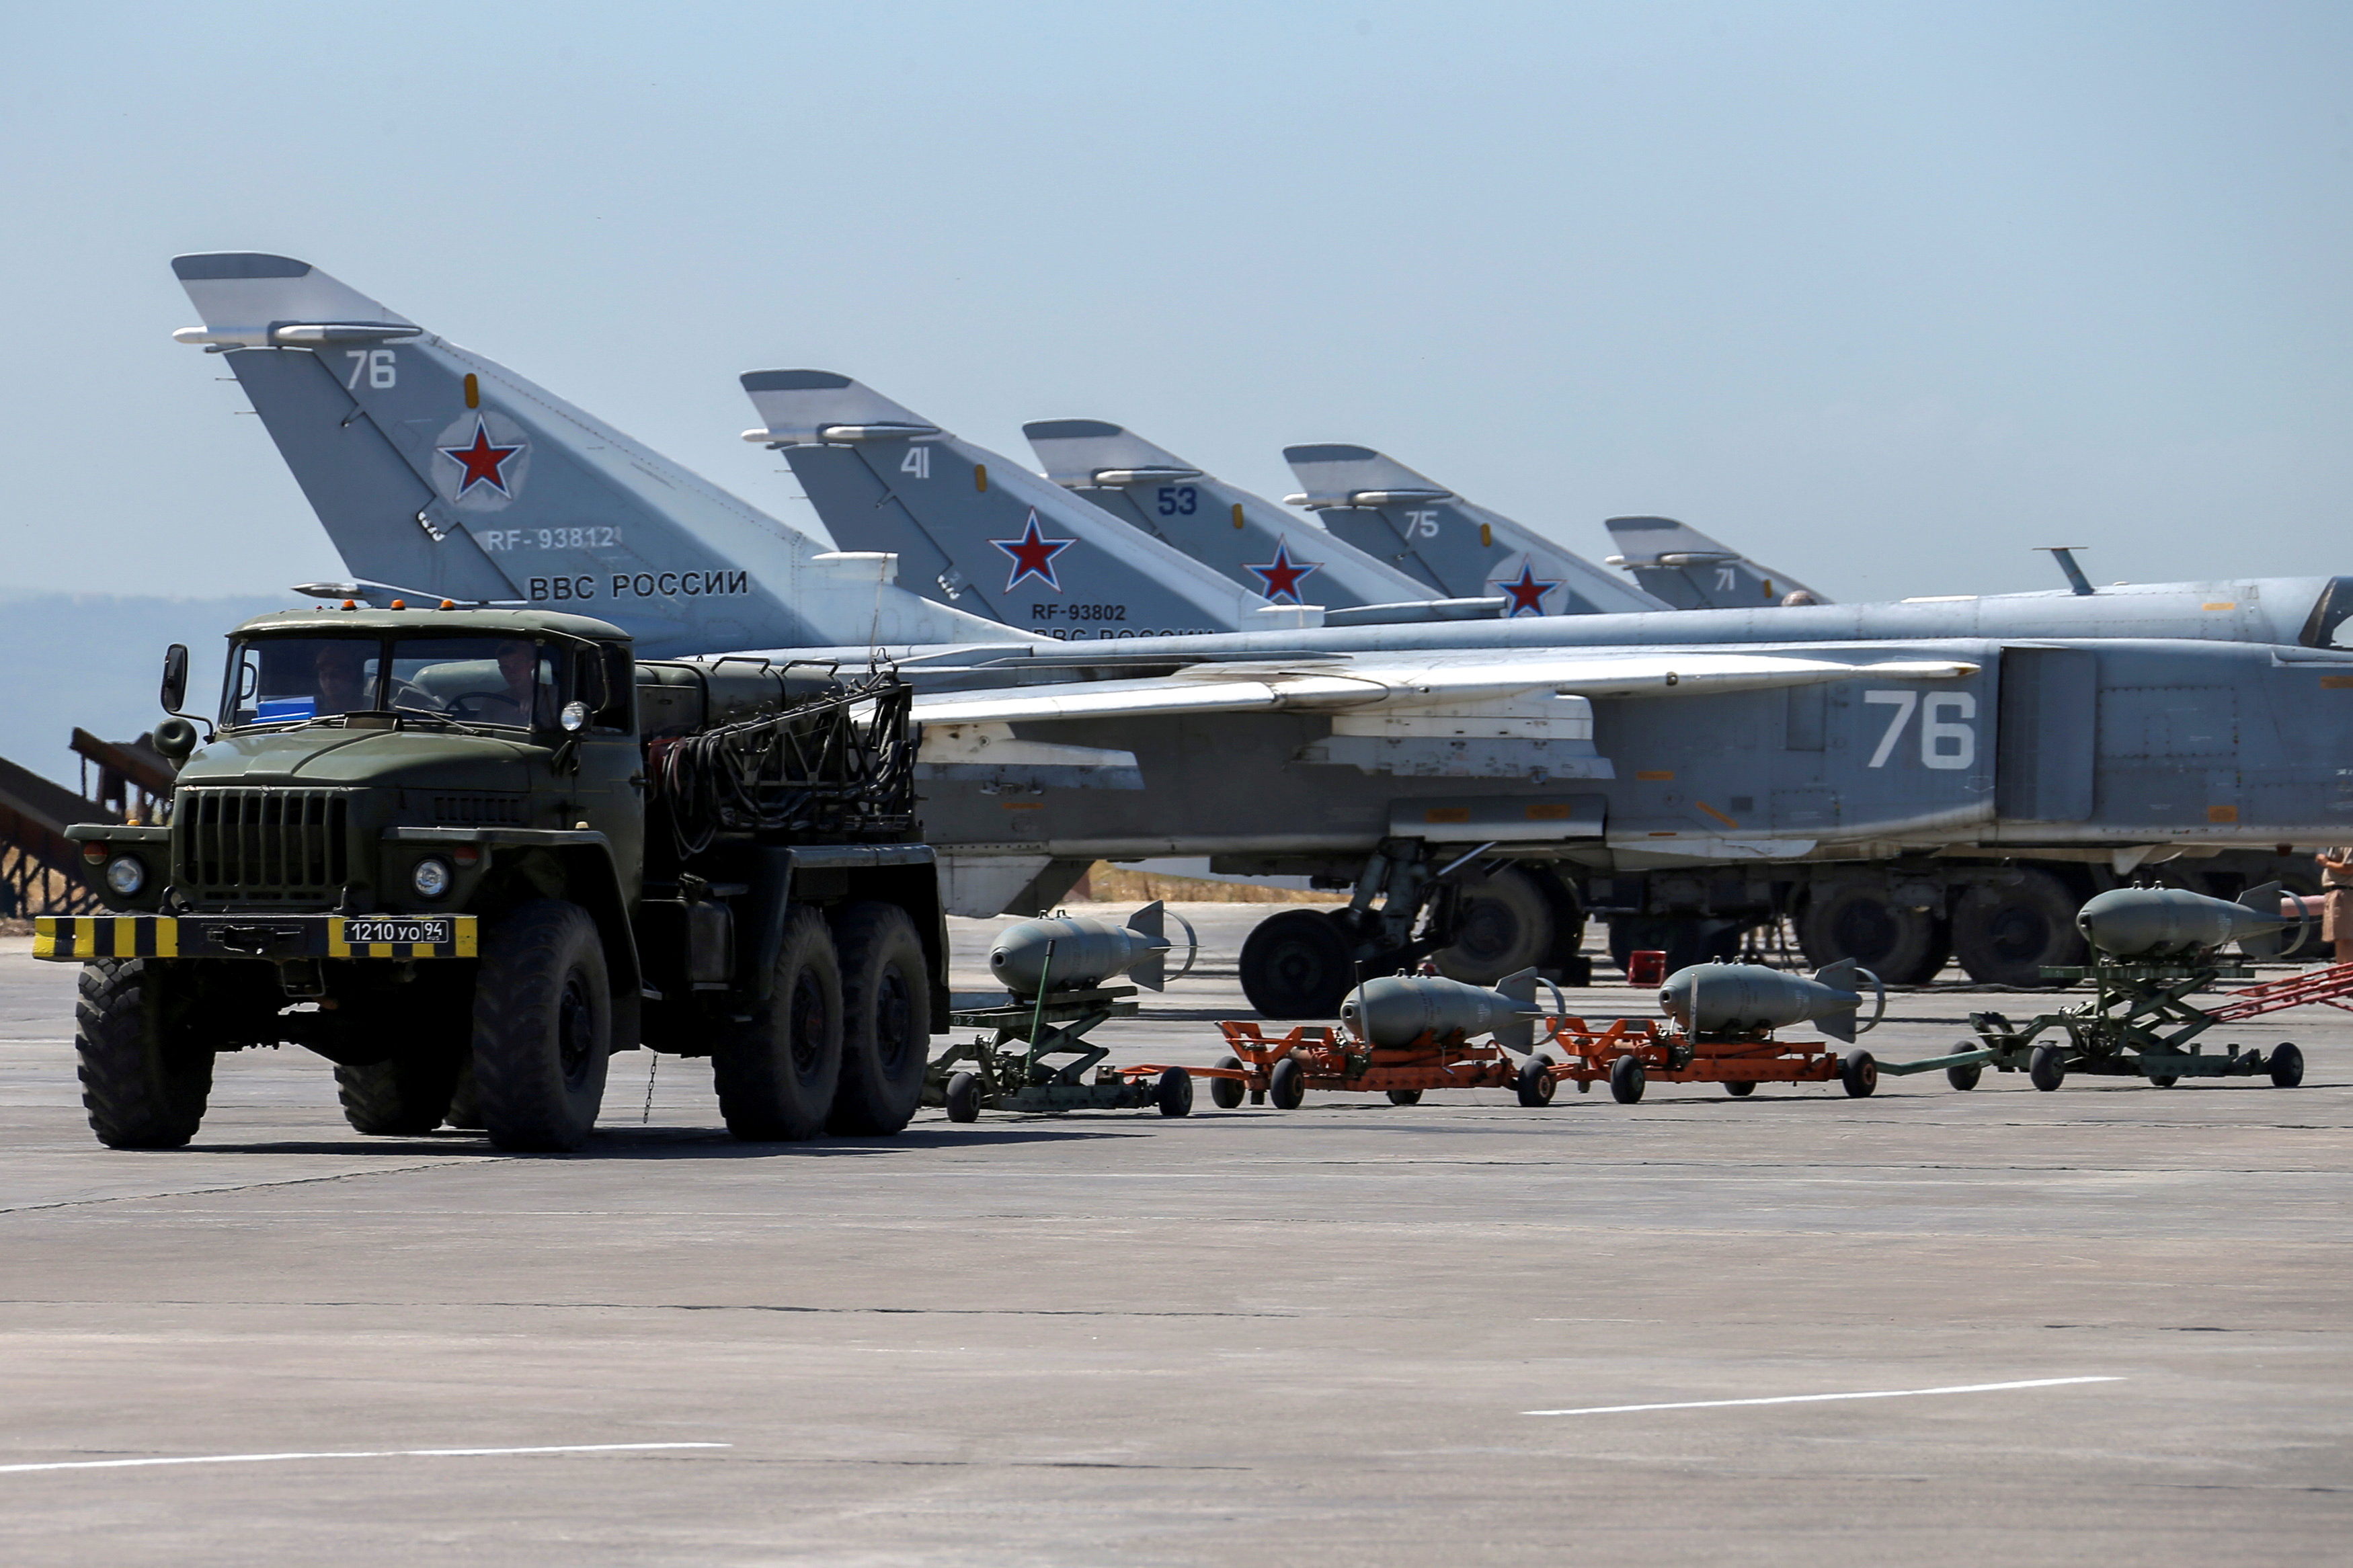 Russian military jets are seen at Hmeymim air base in Syria, June 18, 2016. REUTERS/Vadim Savitsky/Russian Defense Ministry via Reuters/